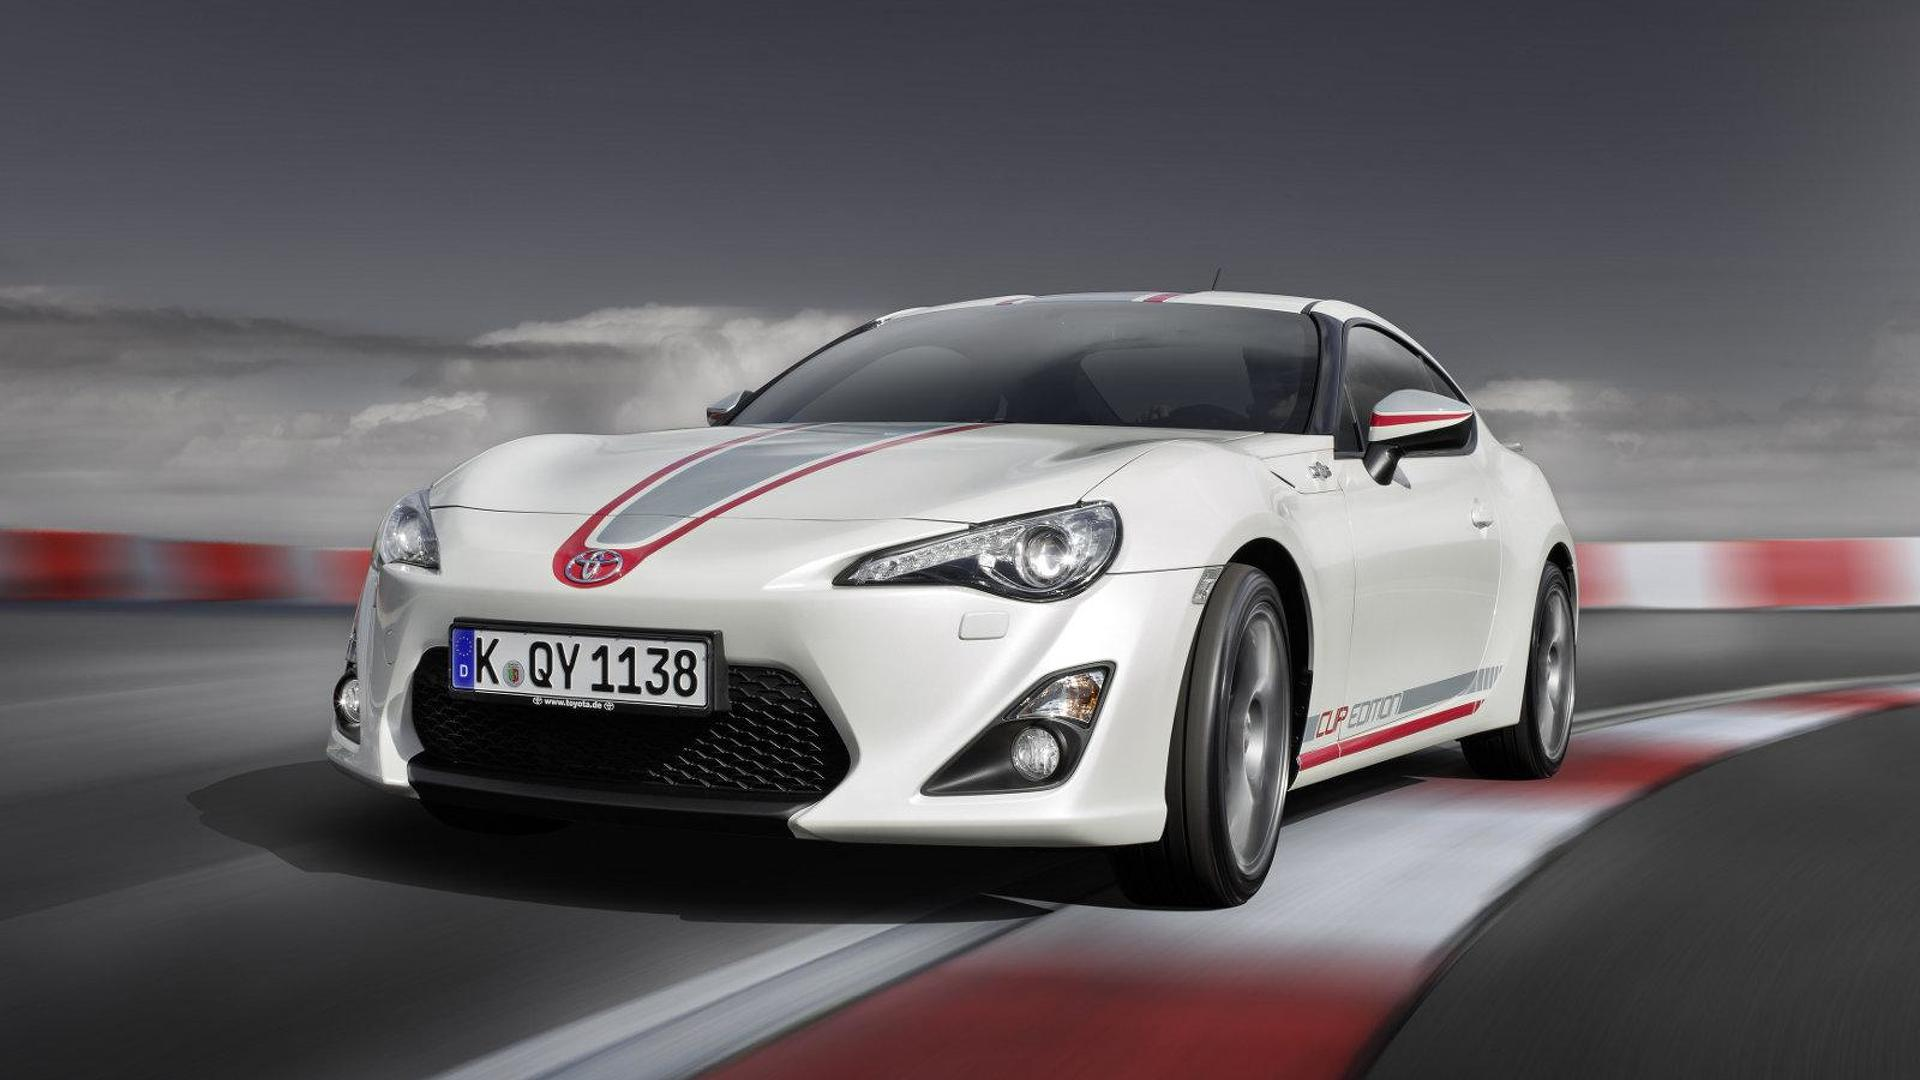 BMW/Toyota sports car could be based on the GT 86